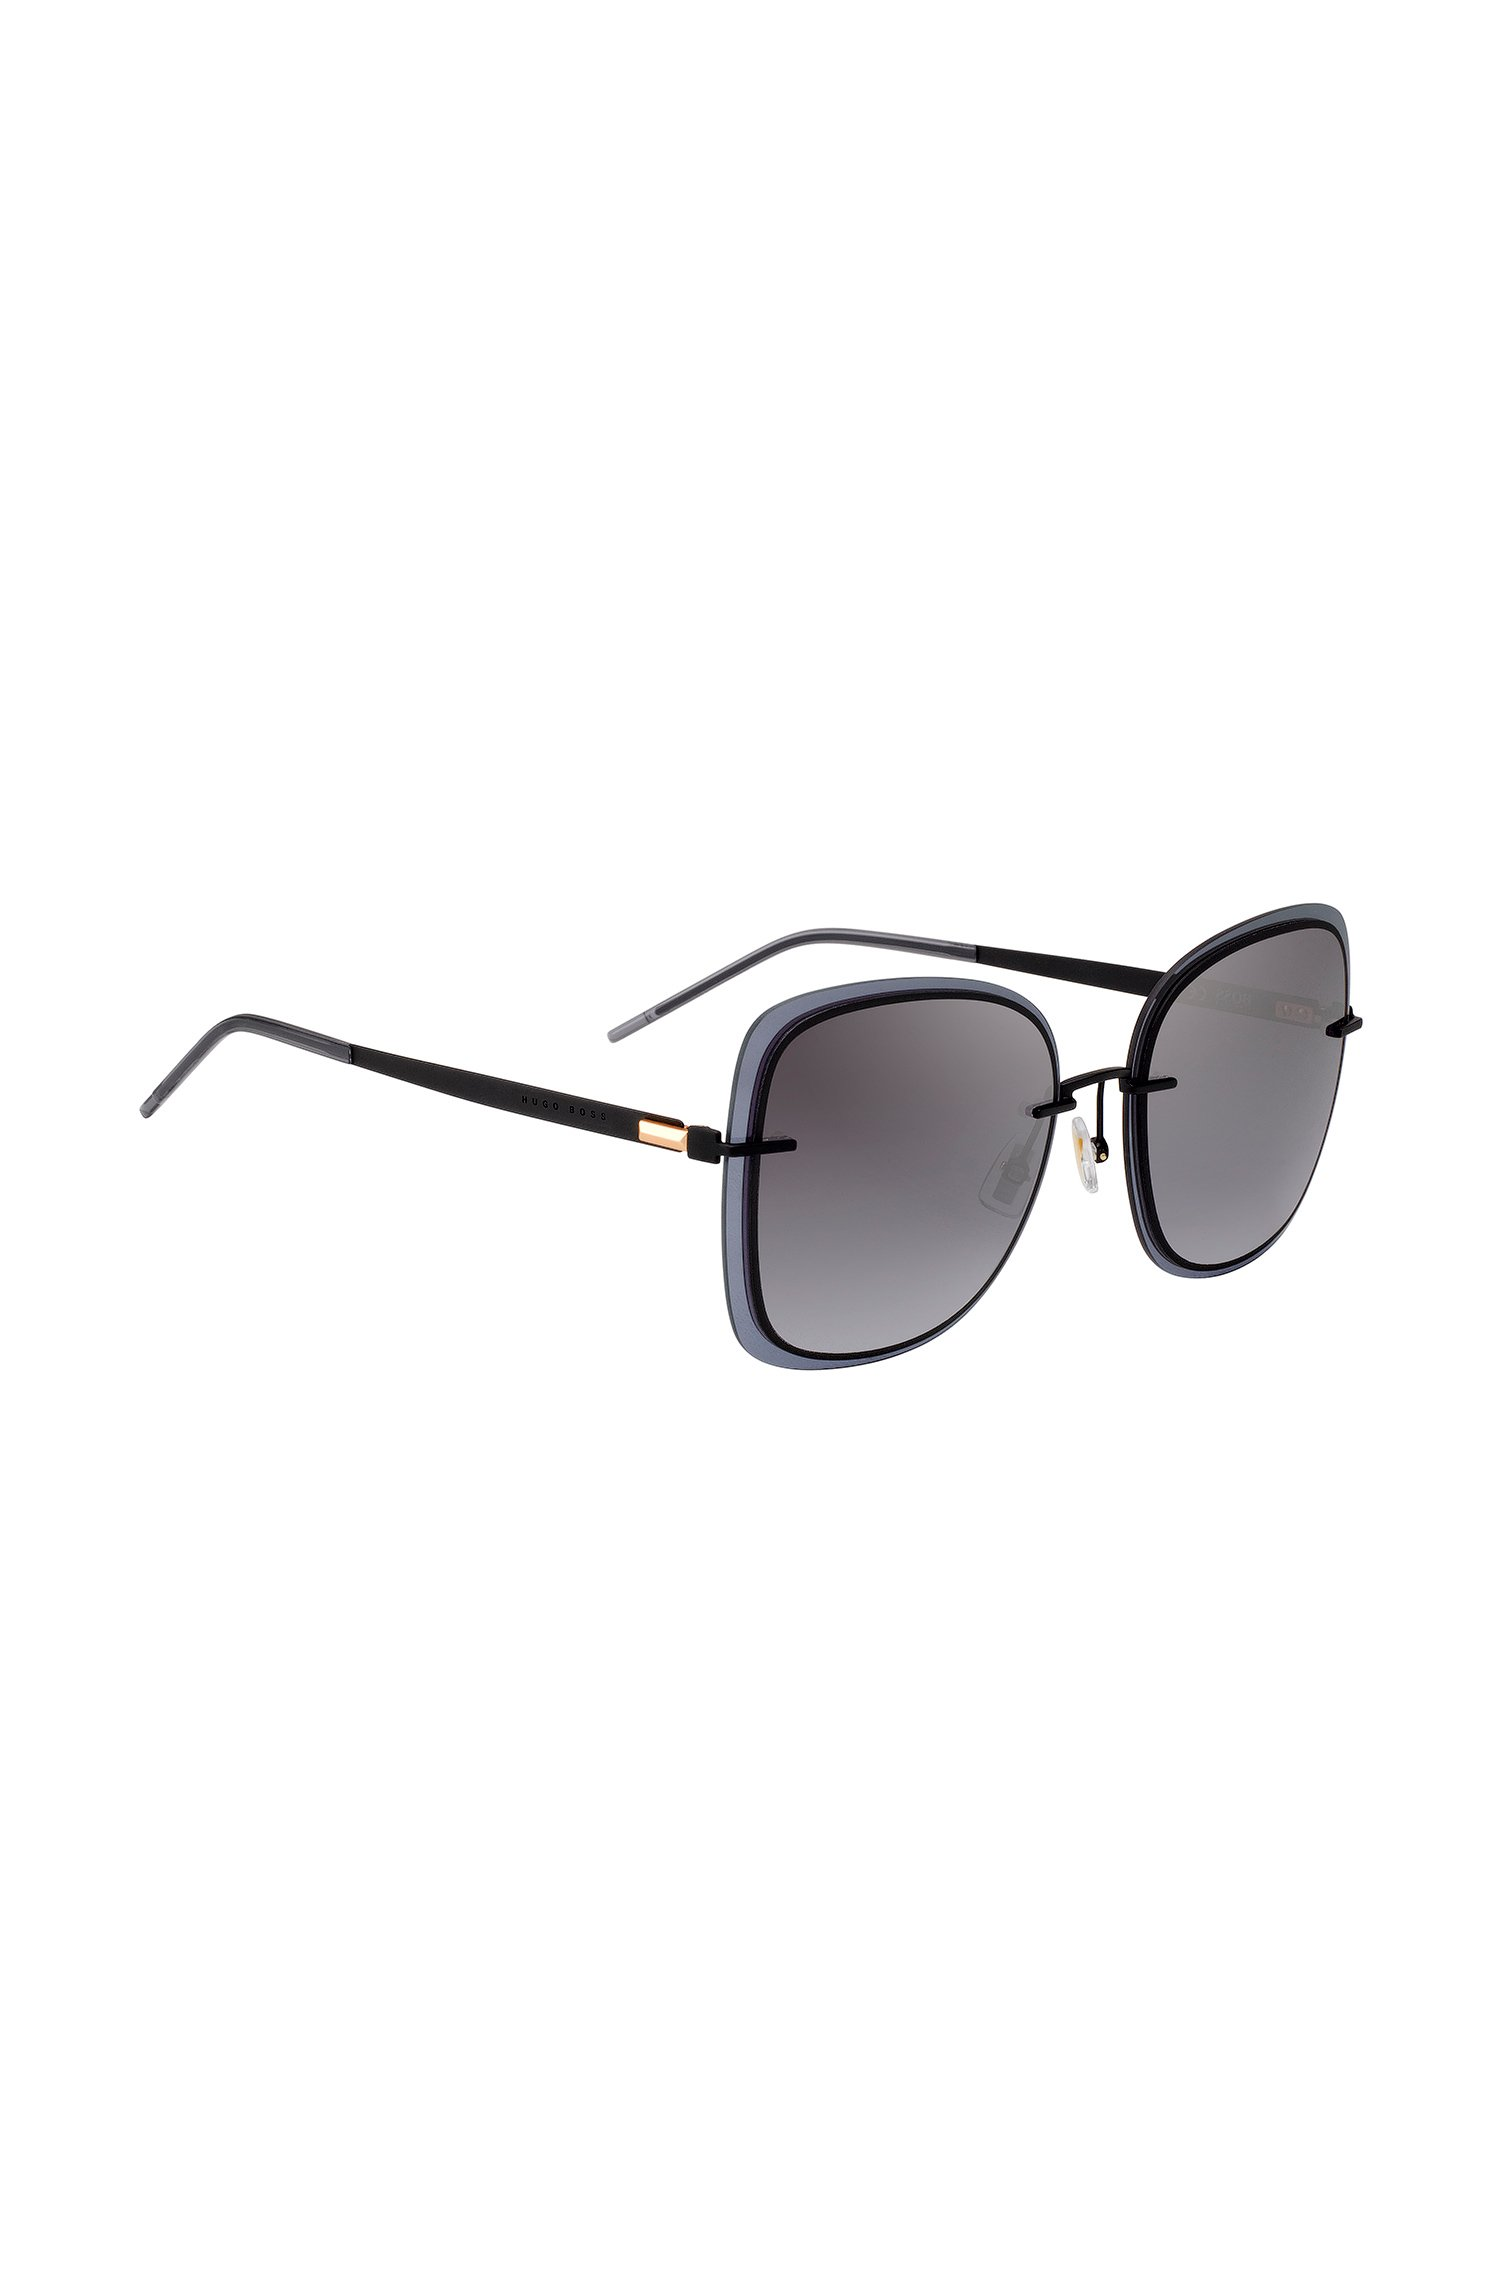 Black sunglasses with transparent edging, Assorted-Pre-Pack